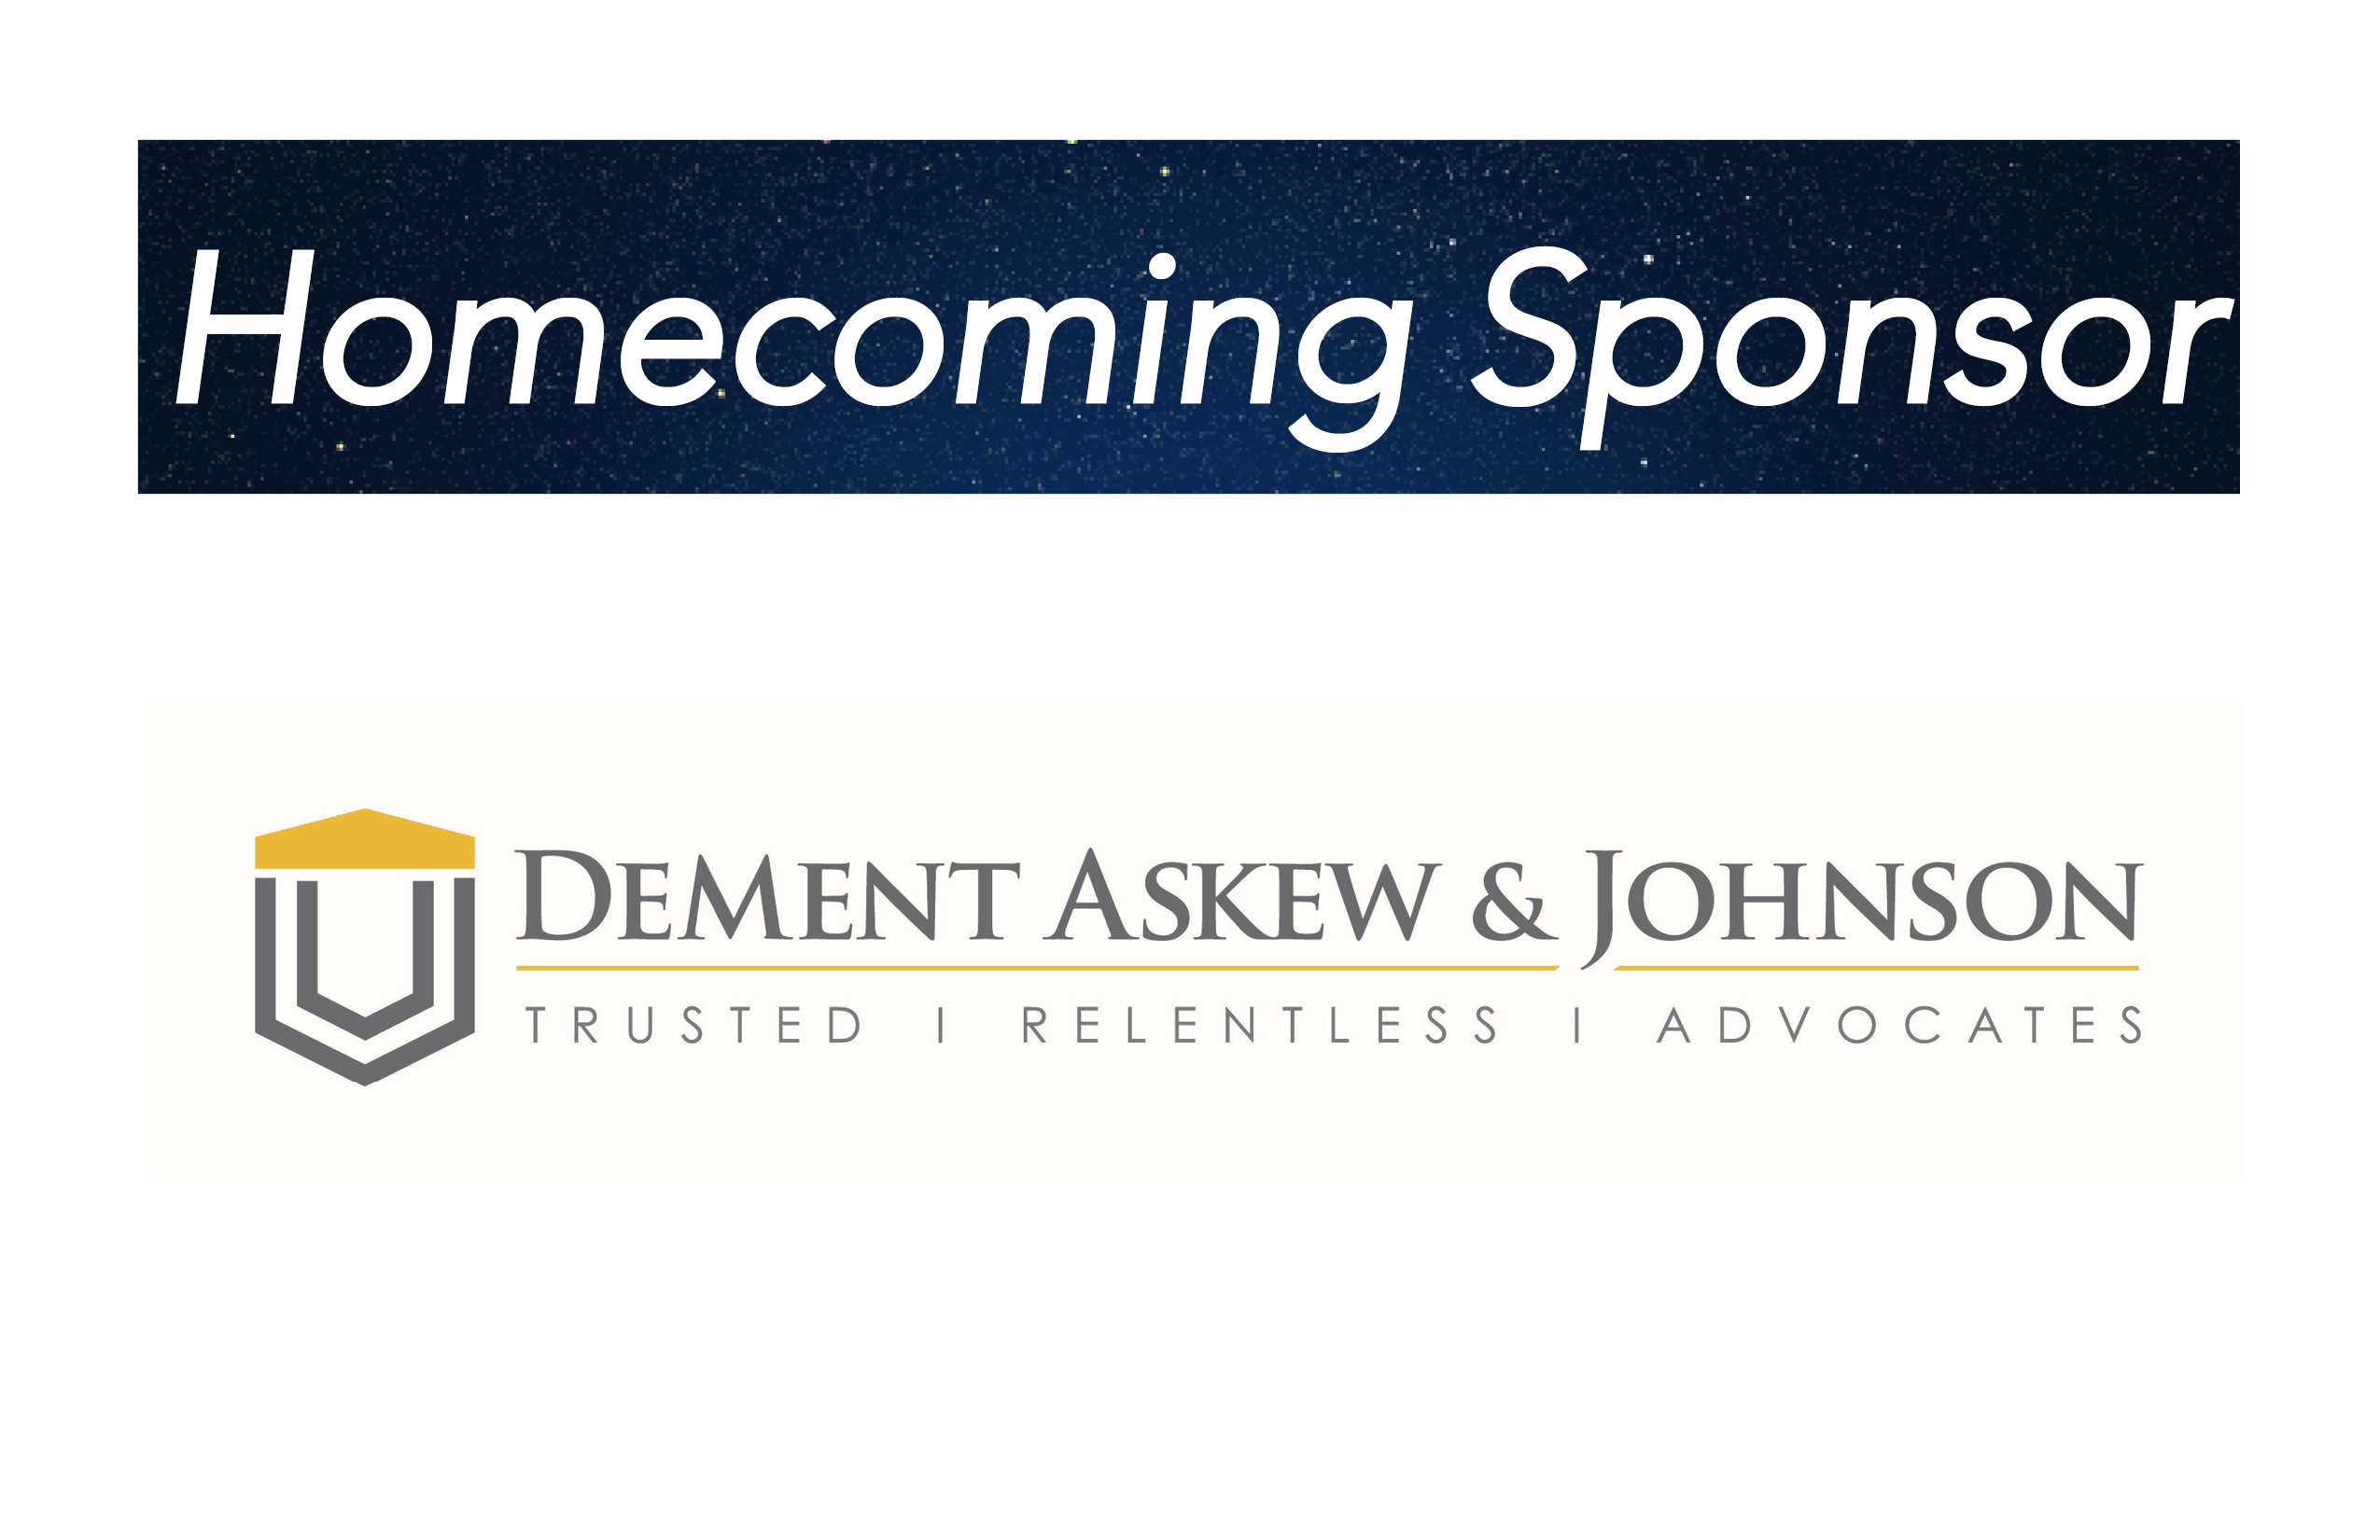 DeMent Askew, Homecoming Sponsor